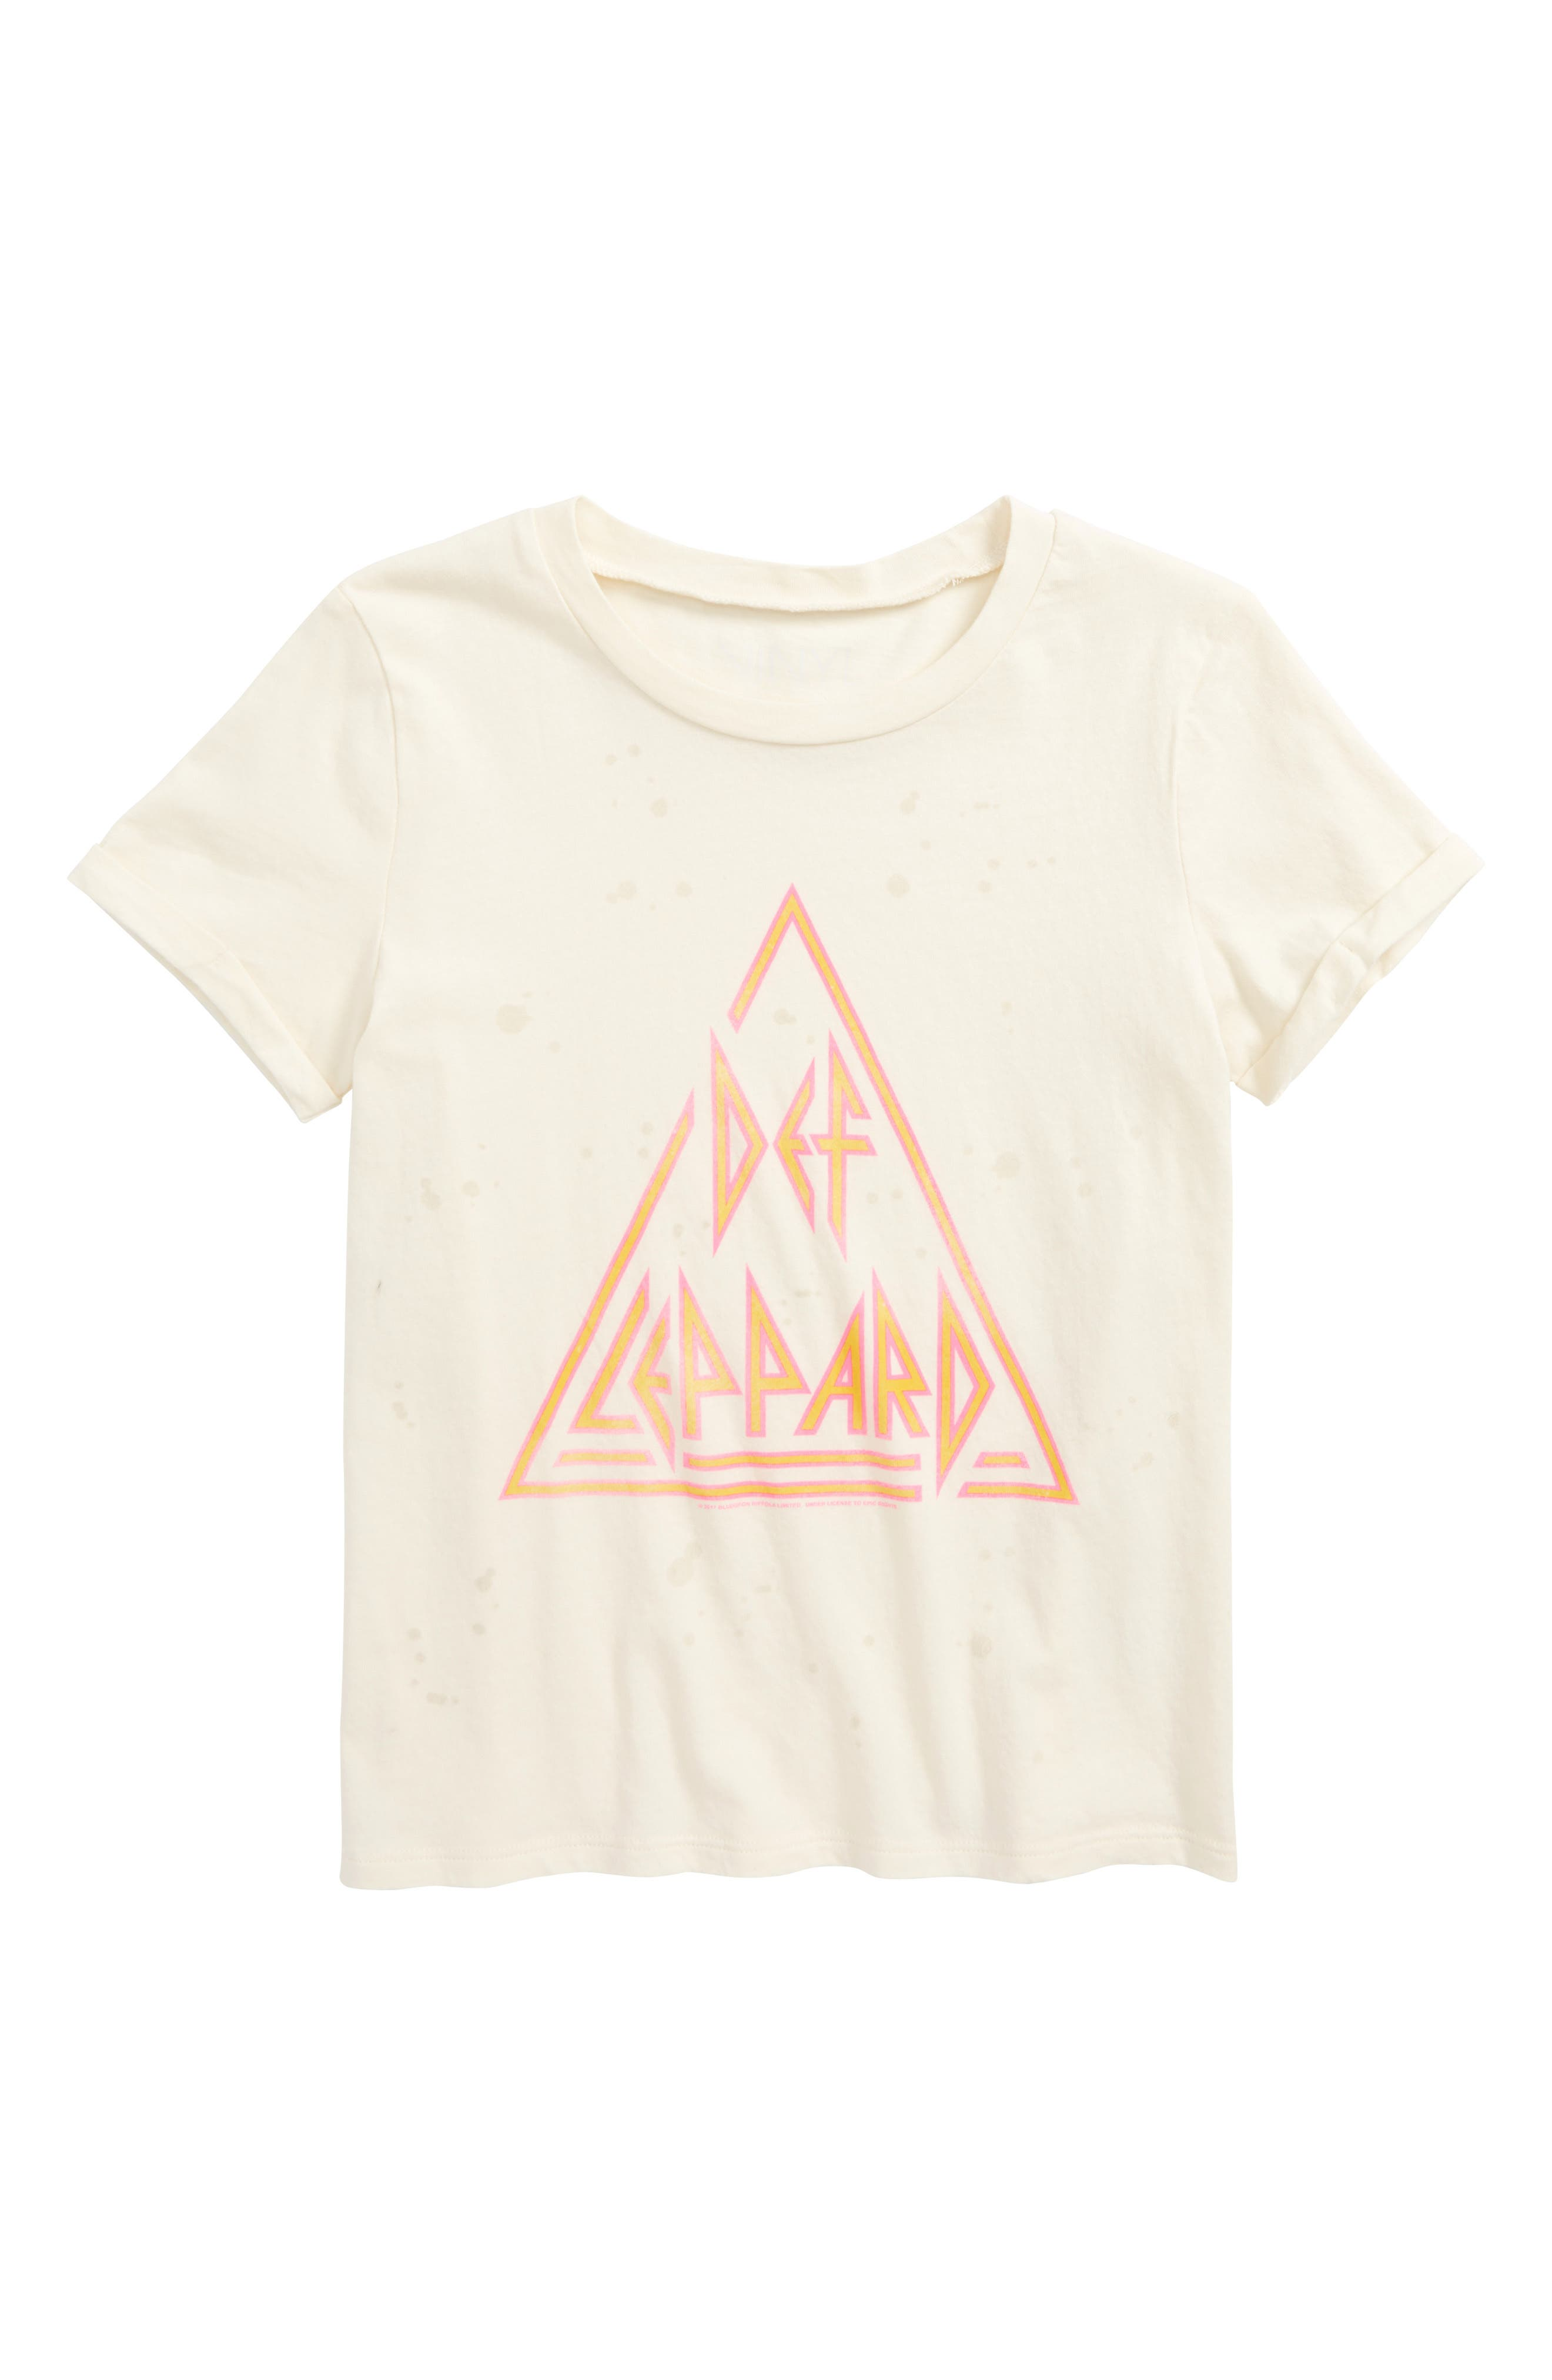 Alternate Image 1 Selected - Mia Chica Def Leppard Graphic Tee (Big Girls)